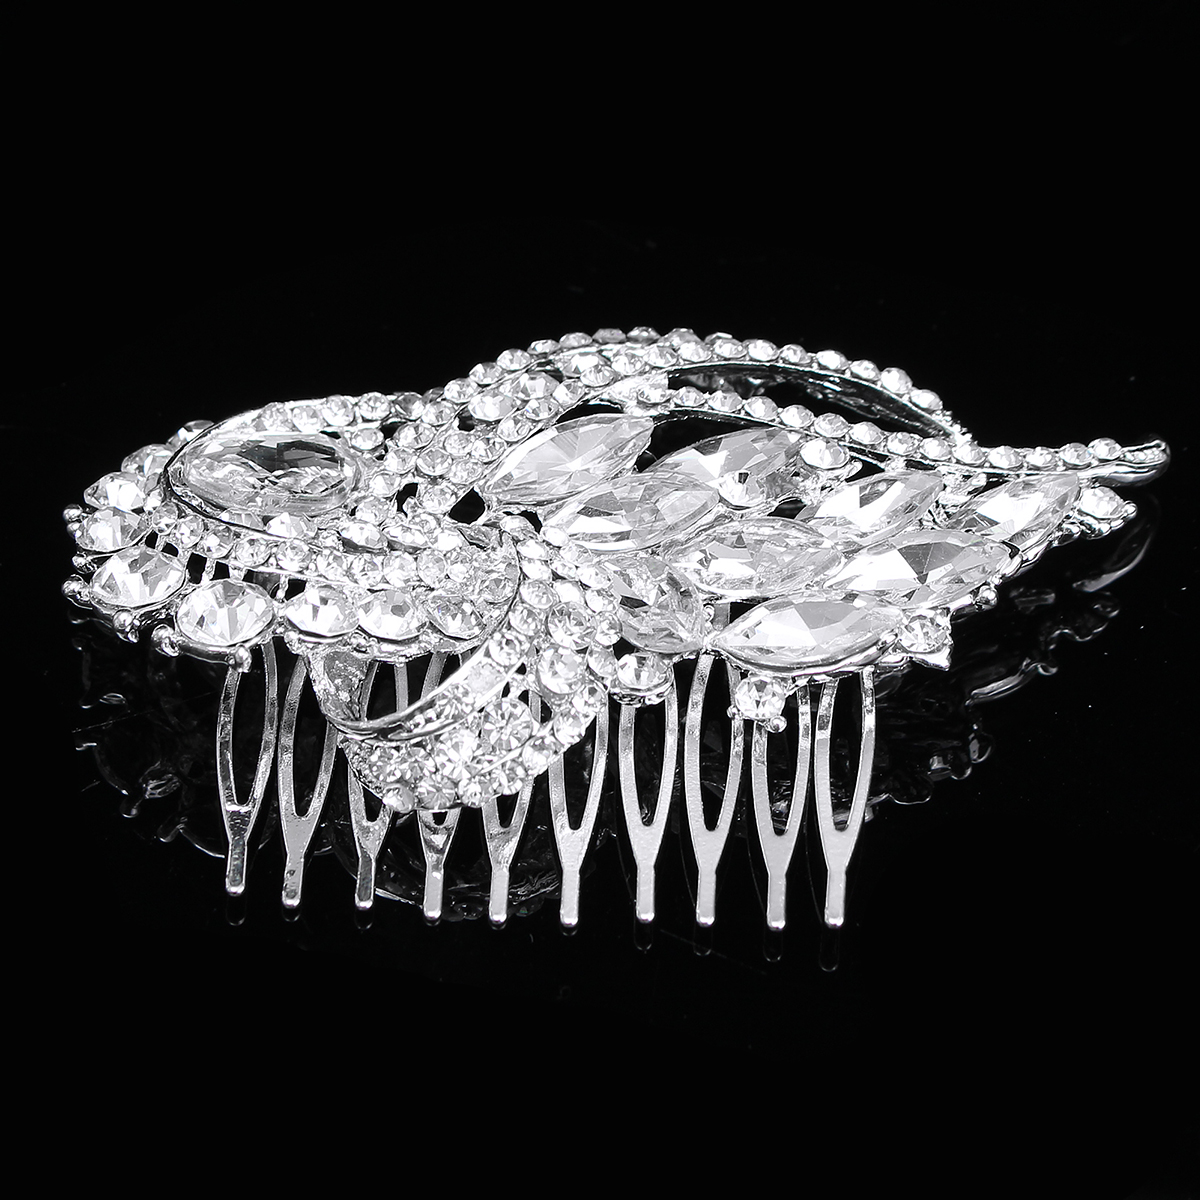 Bridal Artificial Crystal Rhinestone Hair Comb Clip Bride Wedding Party Prom Headpiece